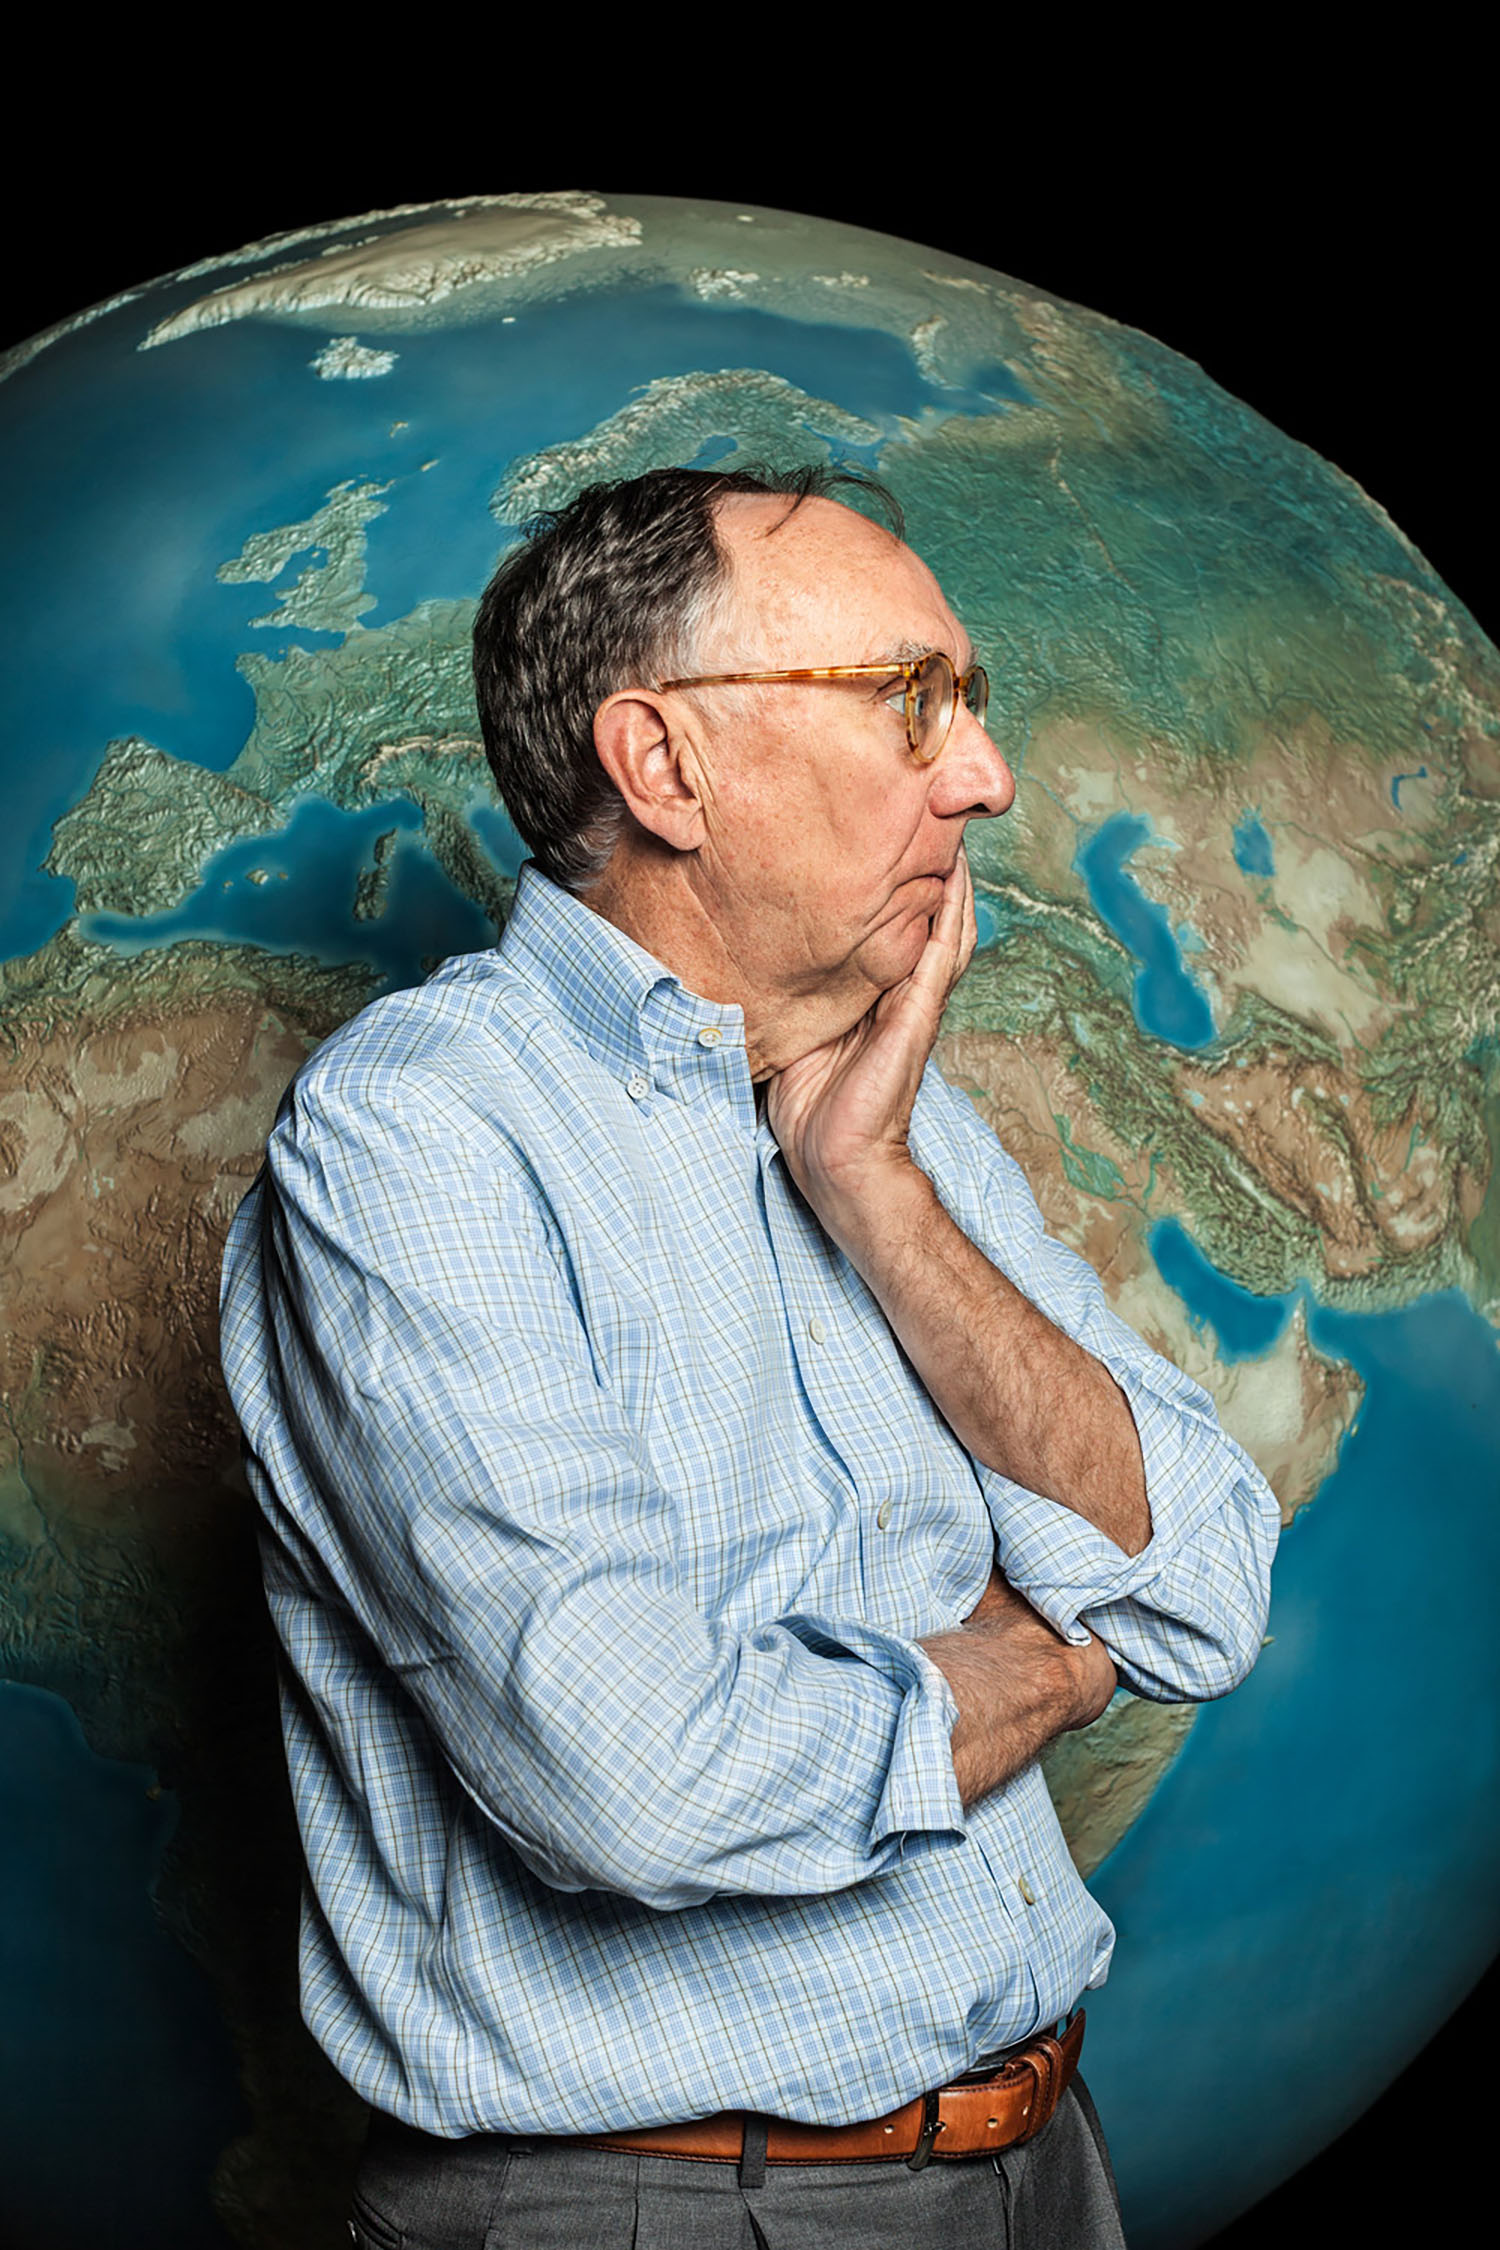 Jack Dangermond, Environmental Scientist, Redlands, California, 2013